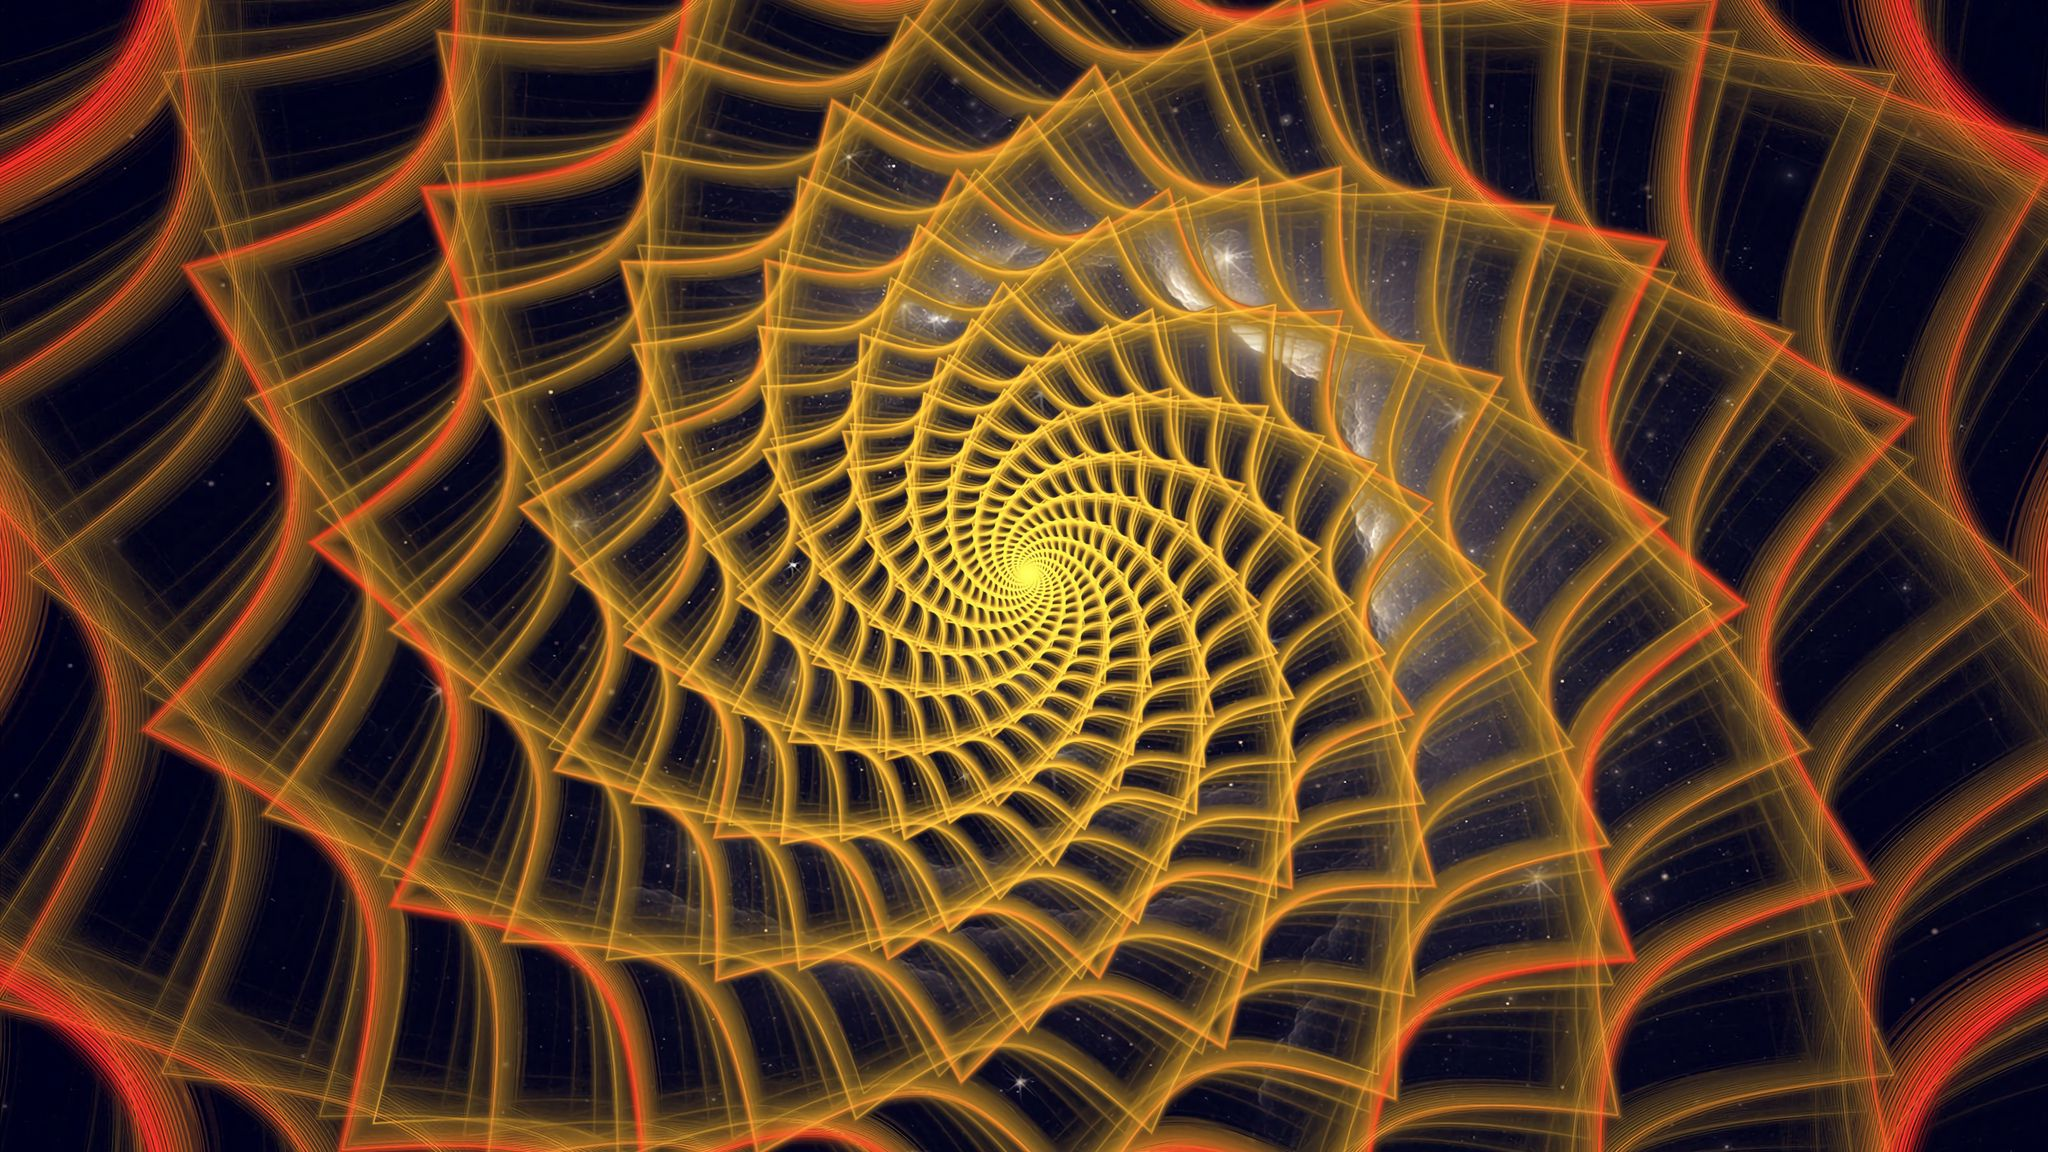 2048x1152 Wallpaper spiral, twisted, tangled, fractal, abstraction